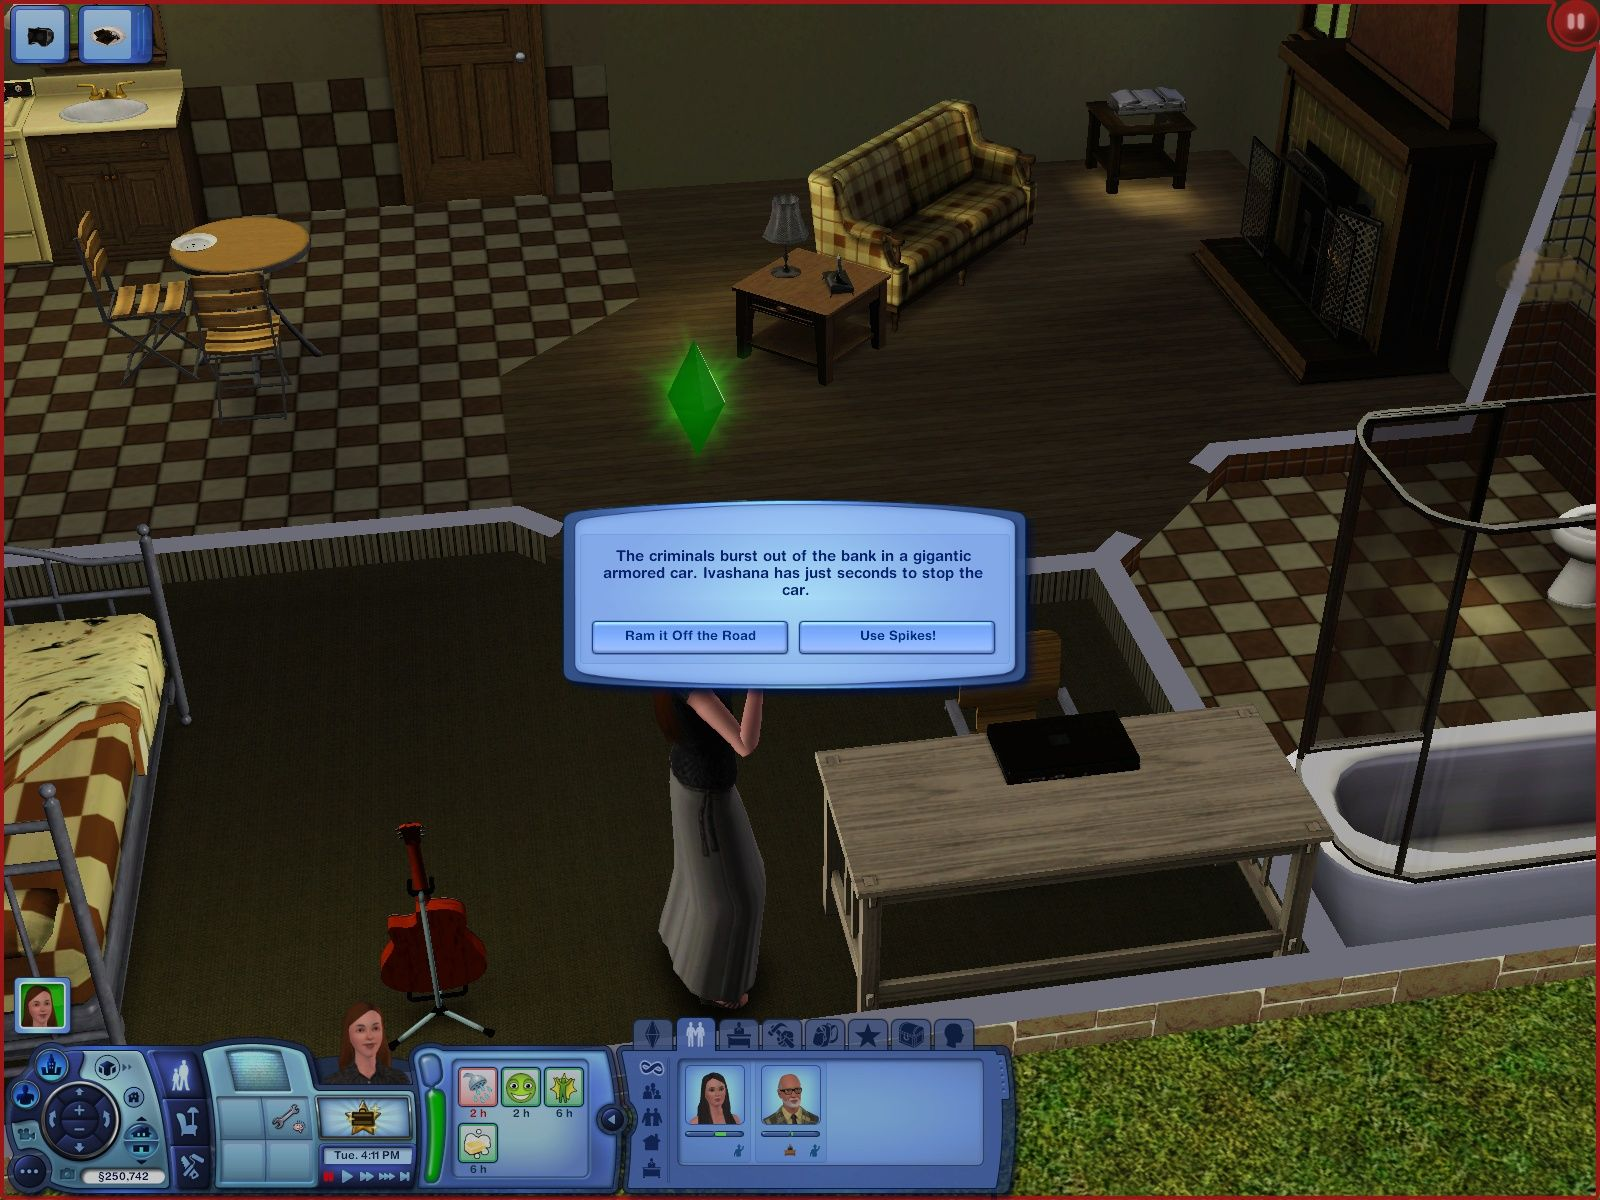 The Sims 3 Windows Playing an adventure-game and deciding what my sim should do.